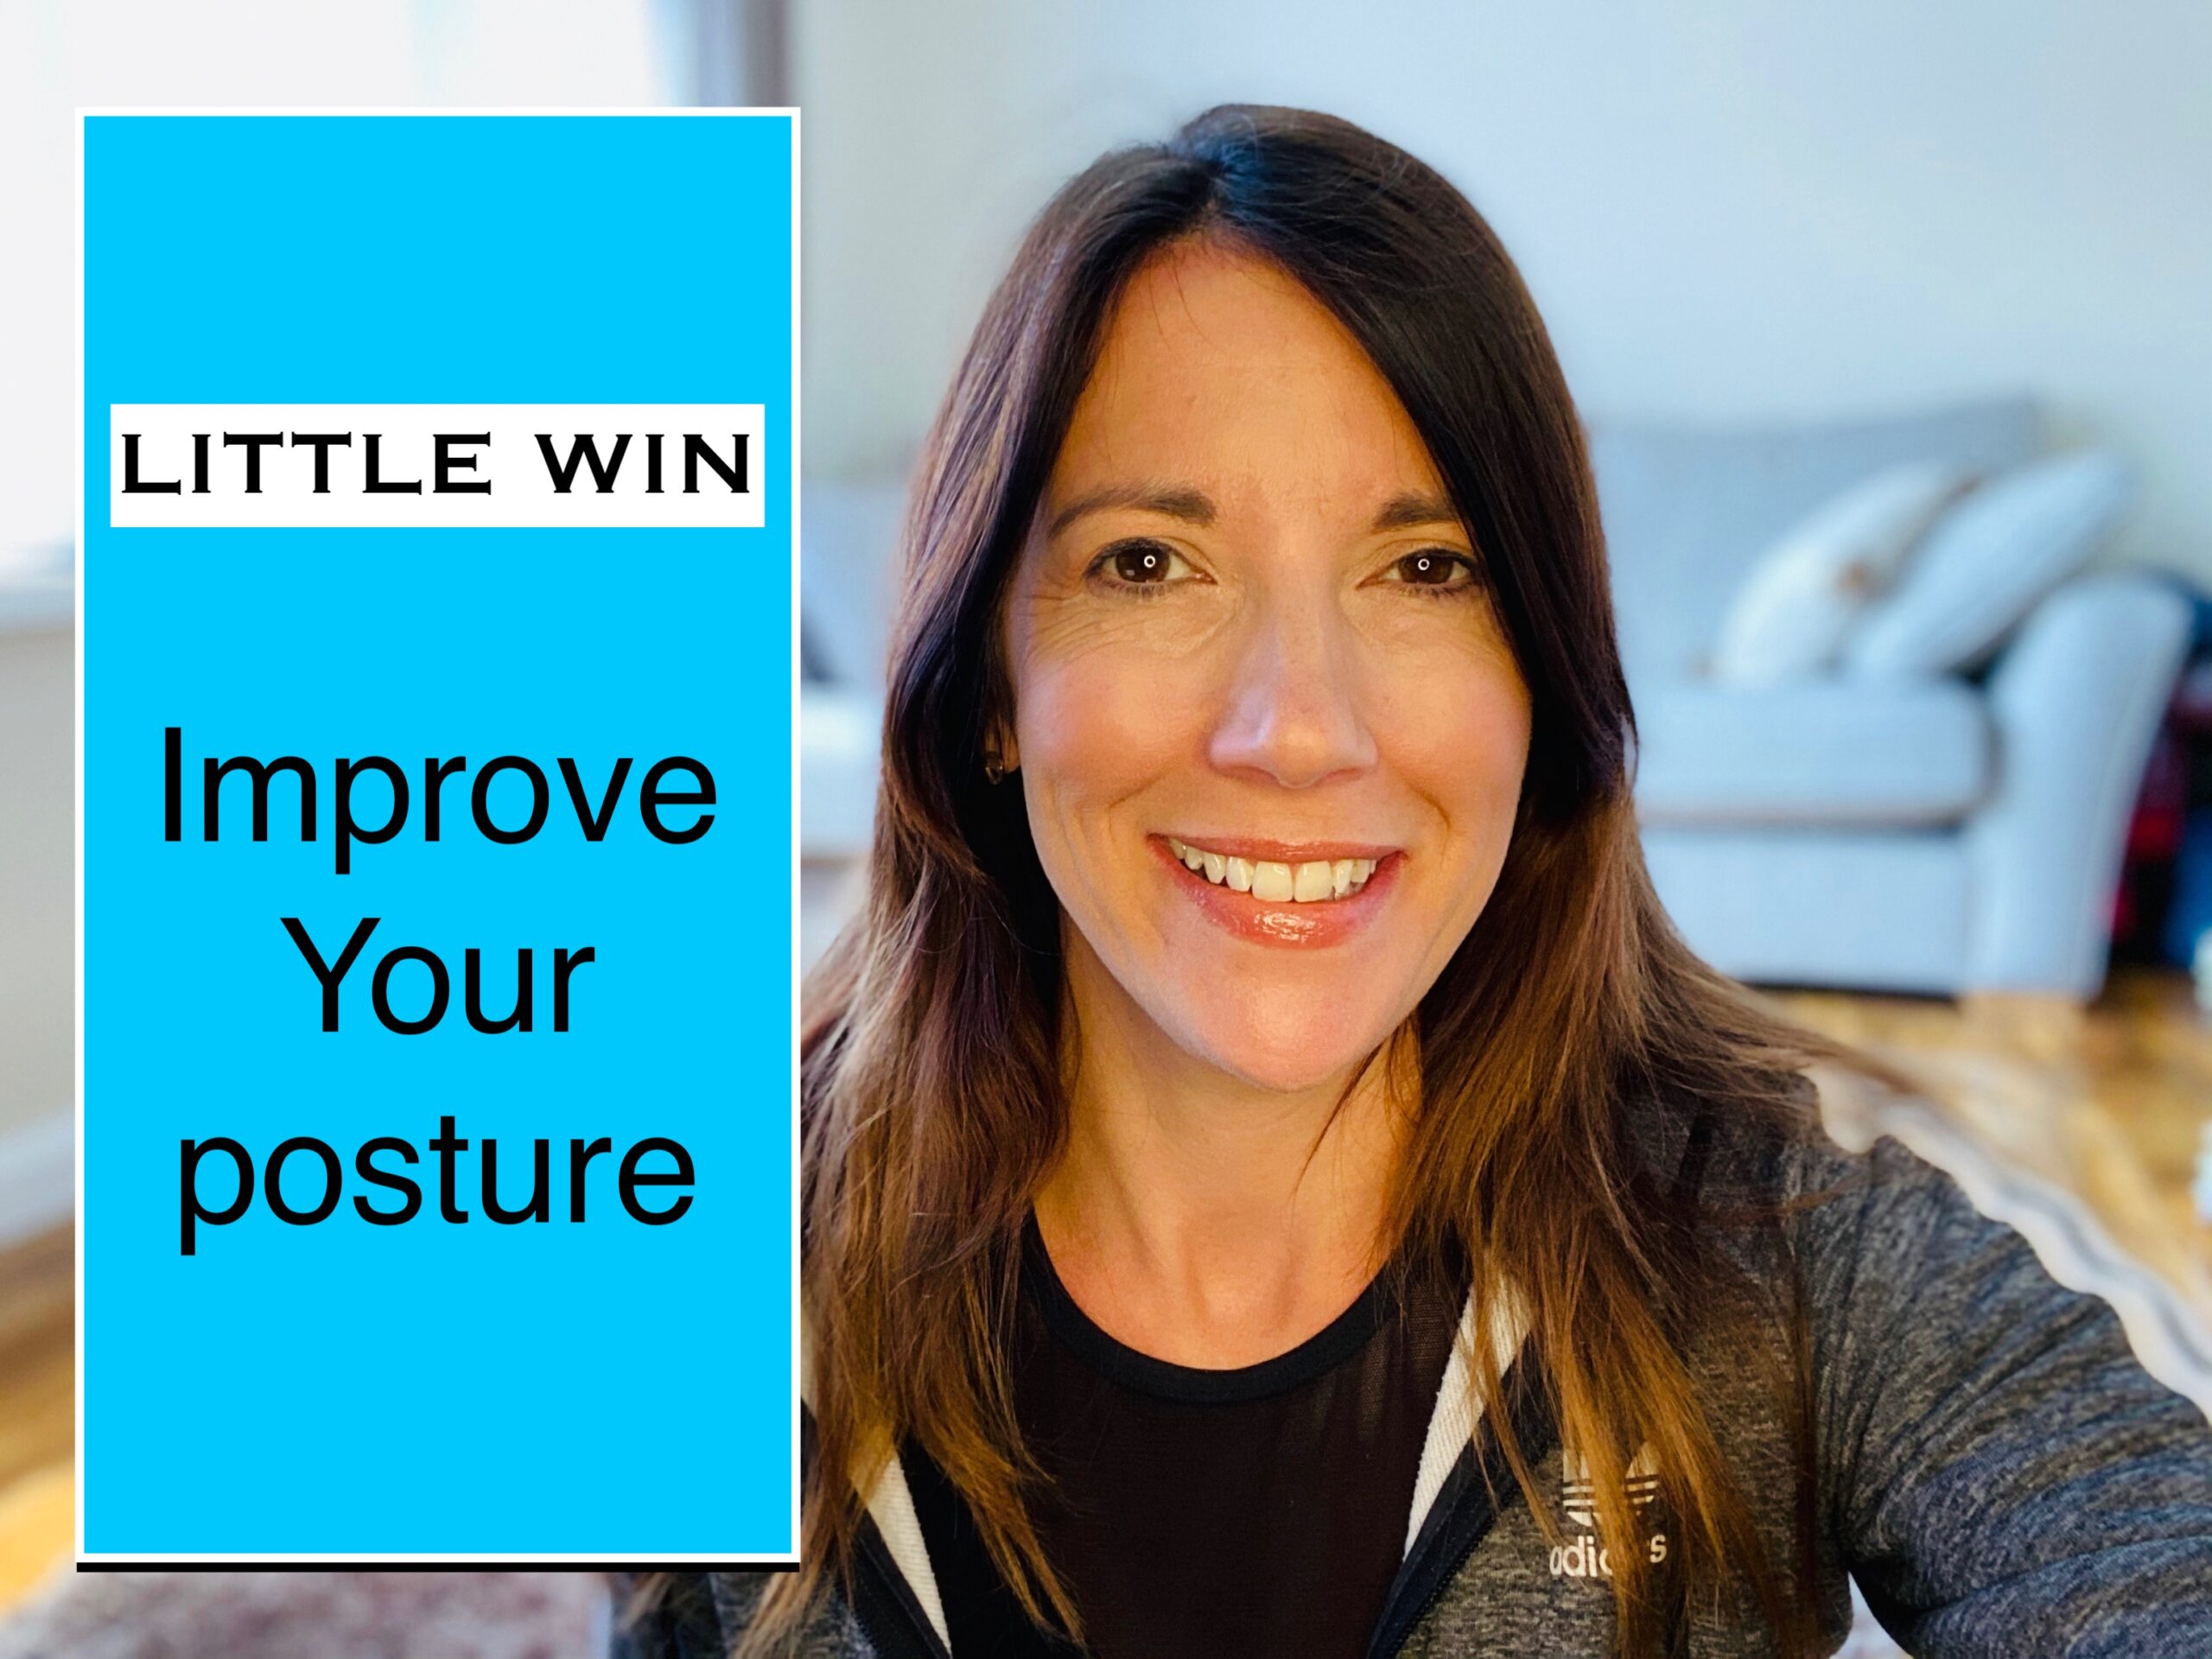 LITTLE WIN  – IMPROVE YOUR POSTURE